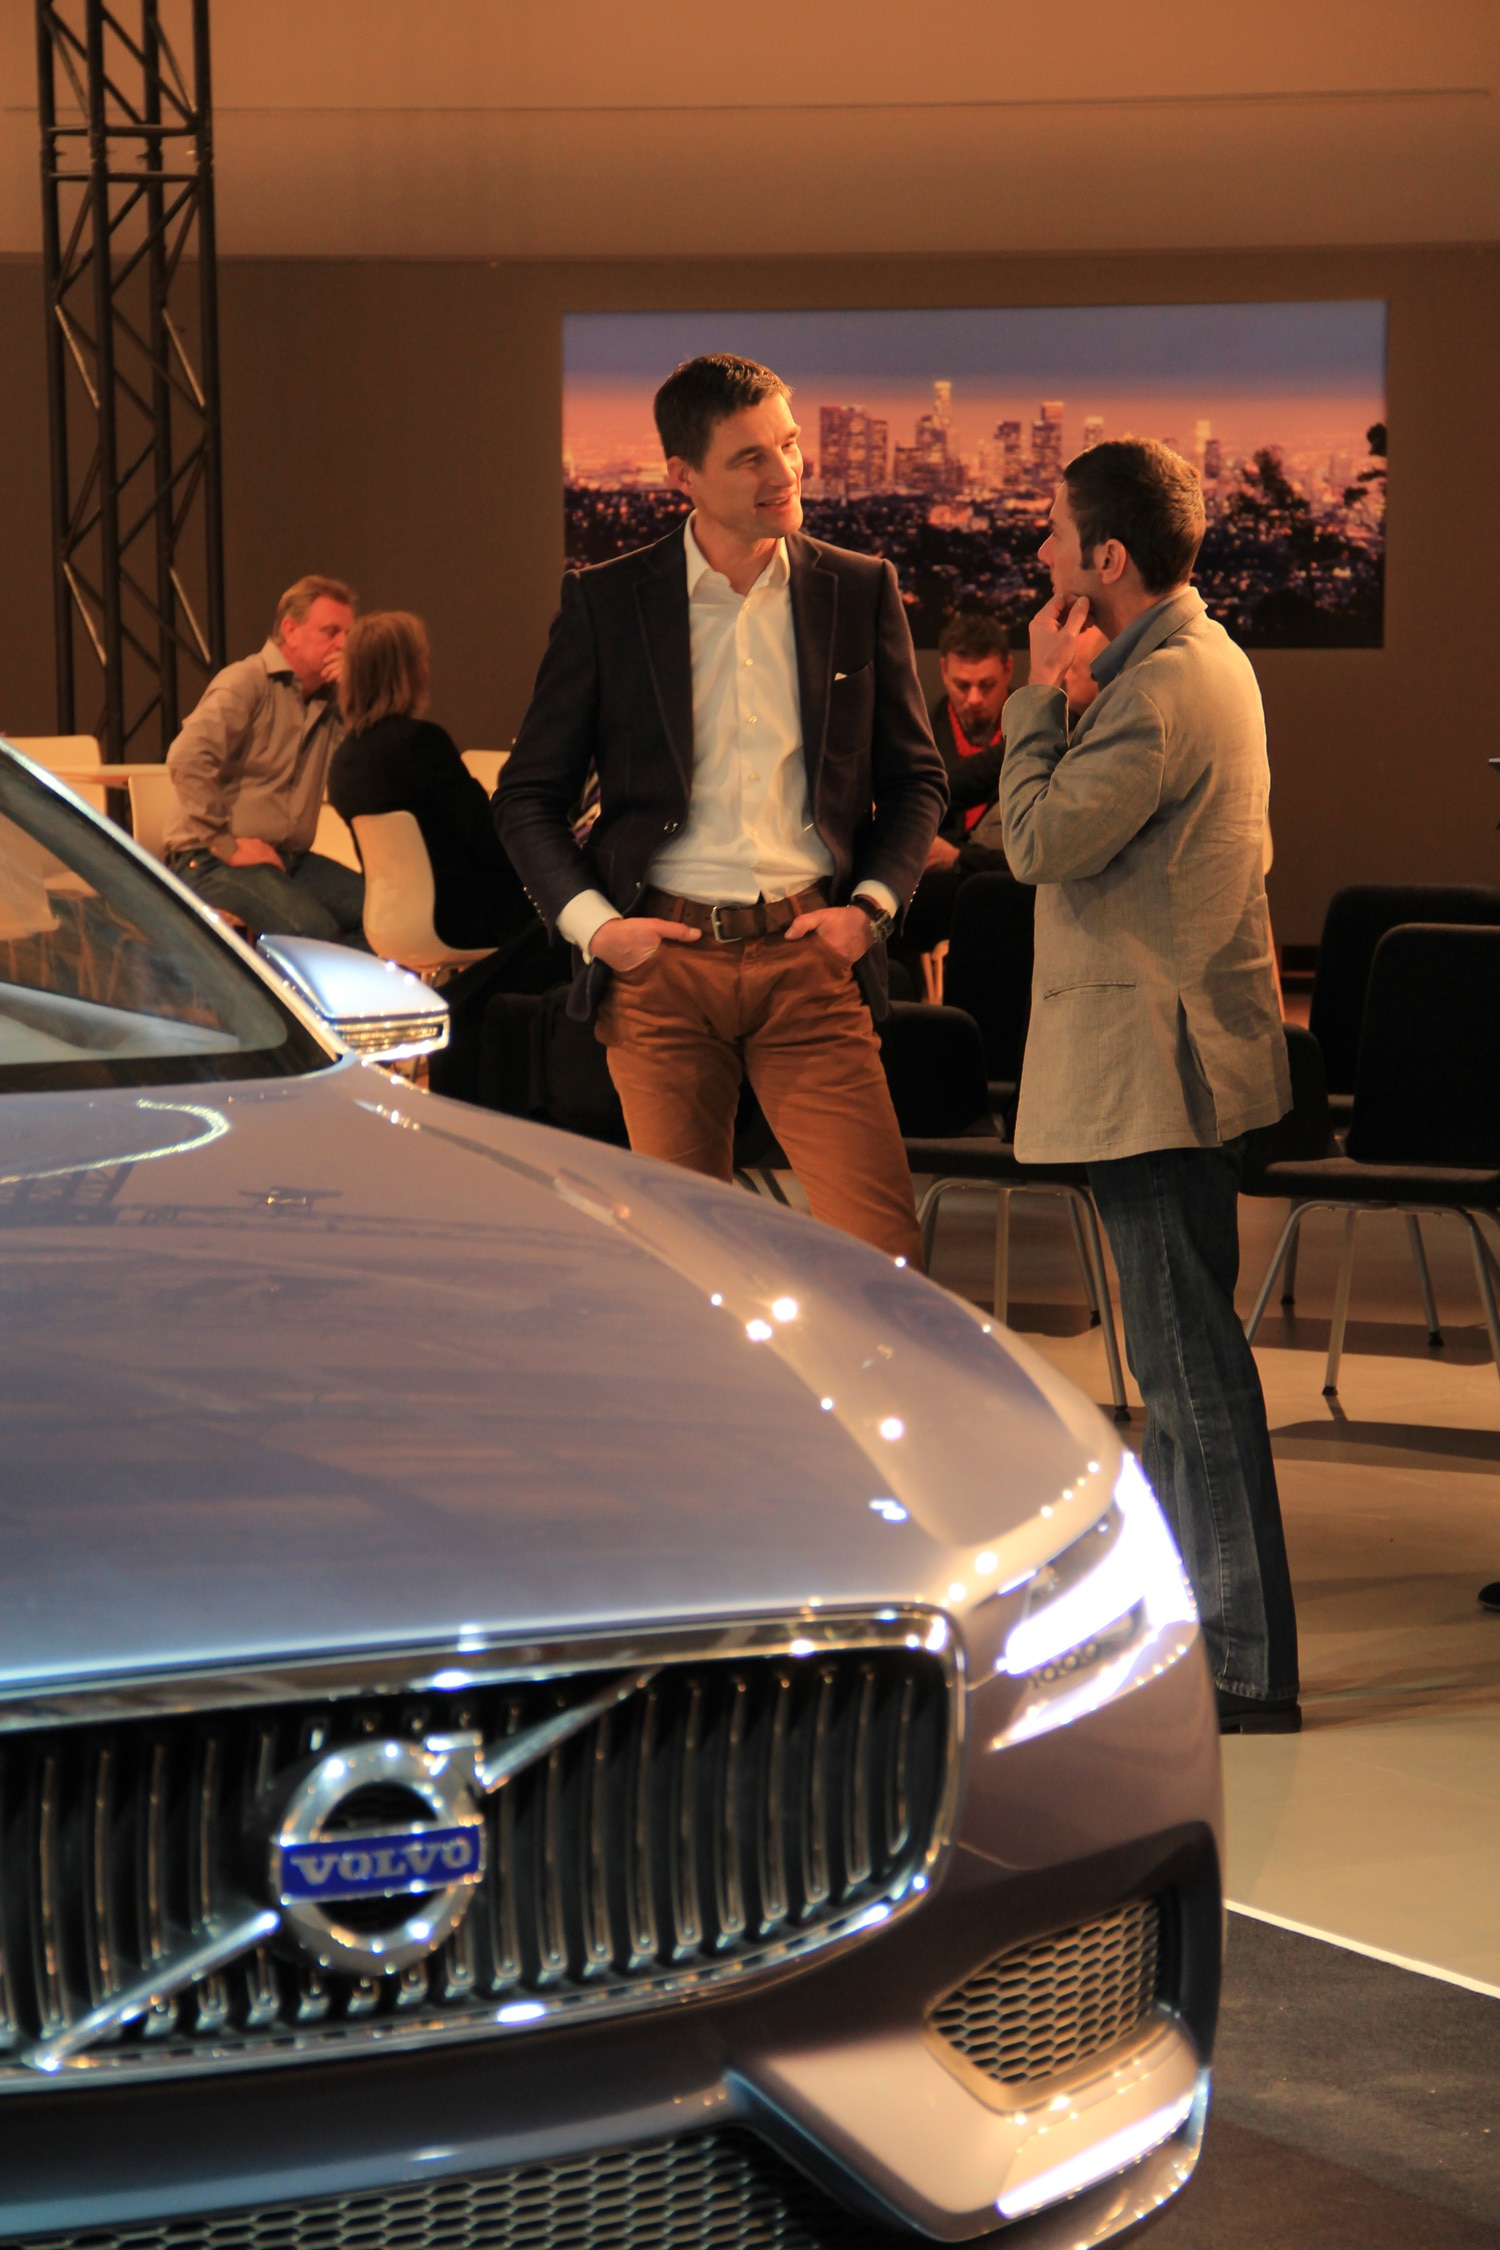 volvo claims zero new vehicle deaths by 2020